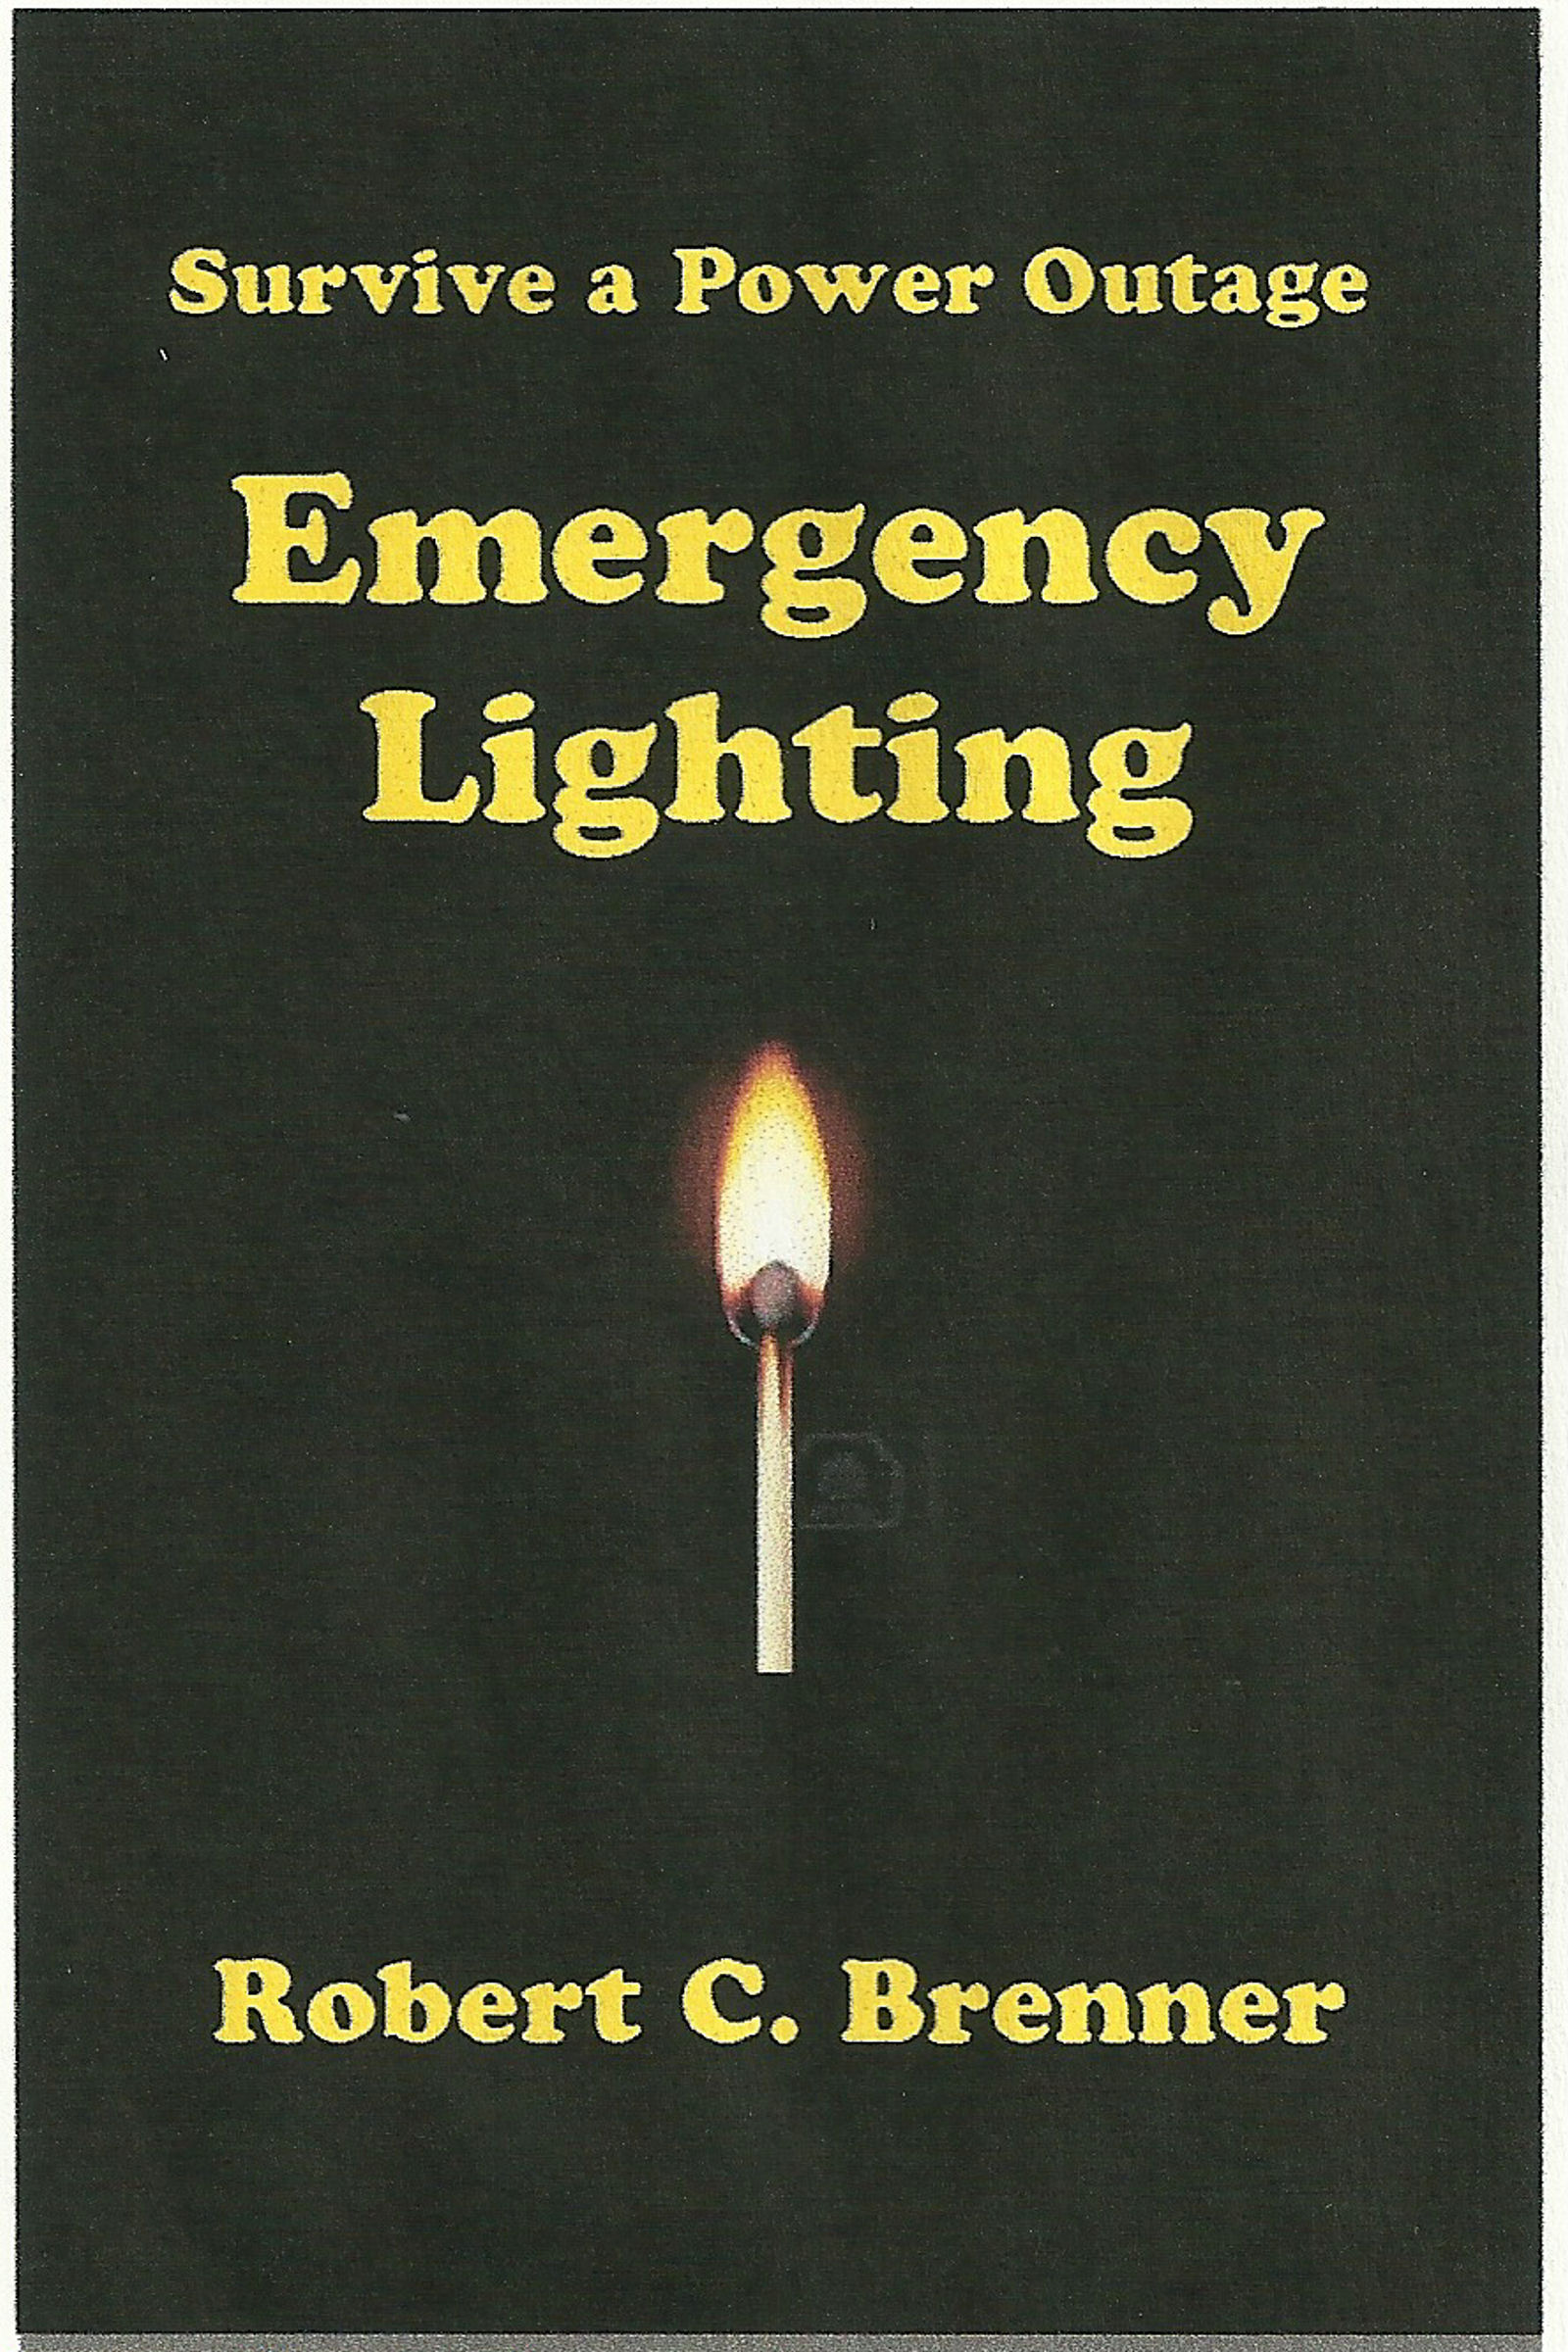 Robert C. Brenner - Survive a Power Outage: Emergency LIghting